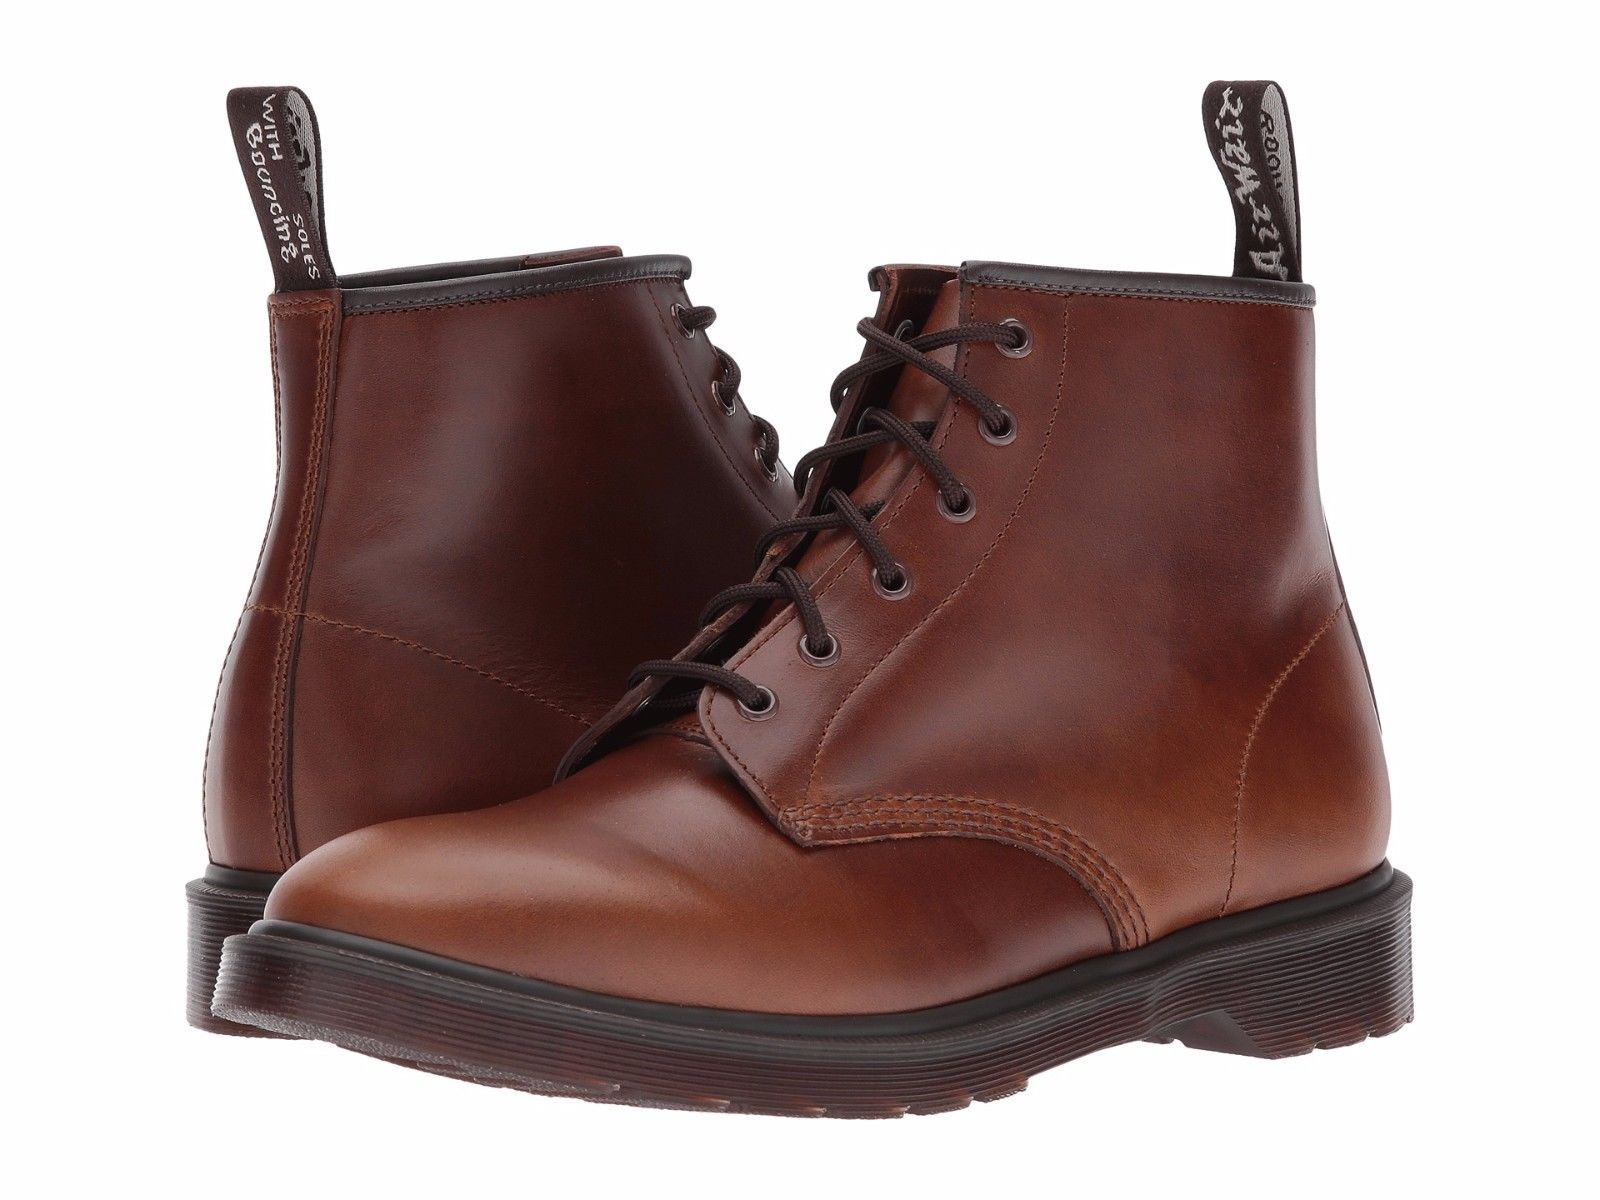 Dr. Martens 101 Brando Men's Shoes 6 Eyelet Boot 22698241 Smoke Thorn by Dr. Martens